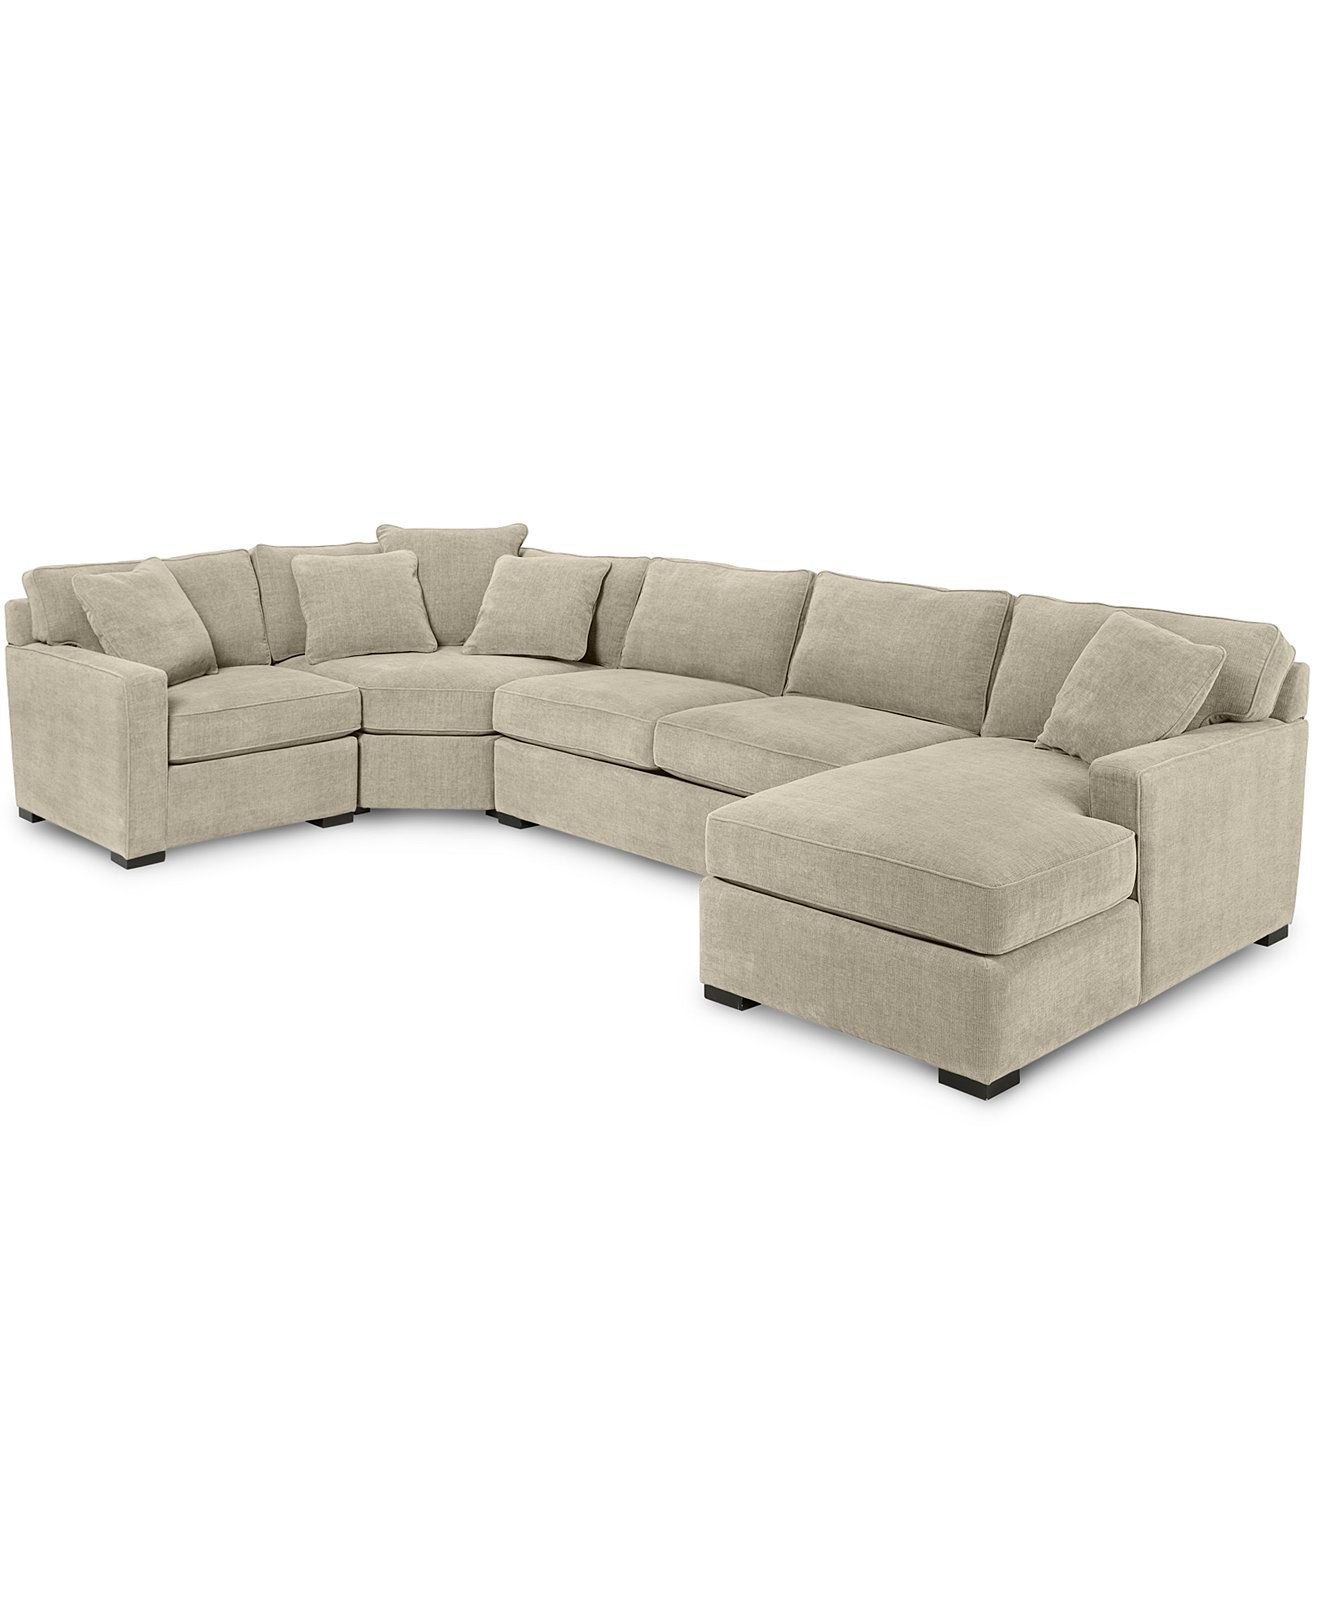 Radley 4 Piece Fabric Chaise Sectional Sofa